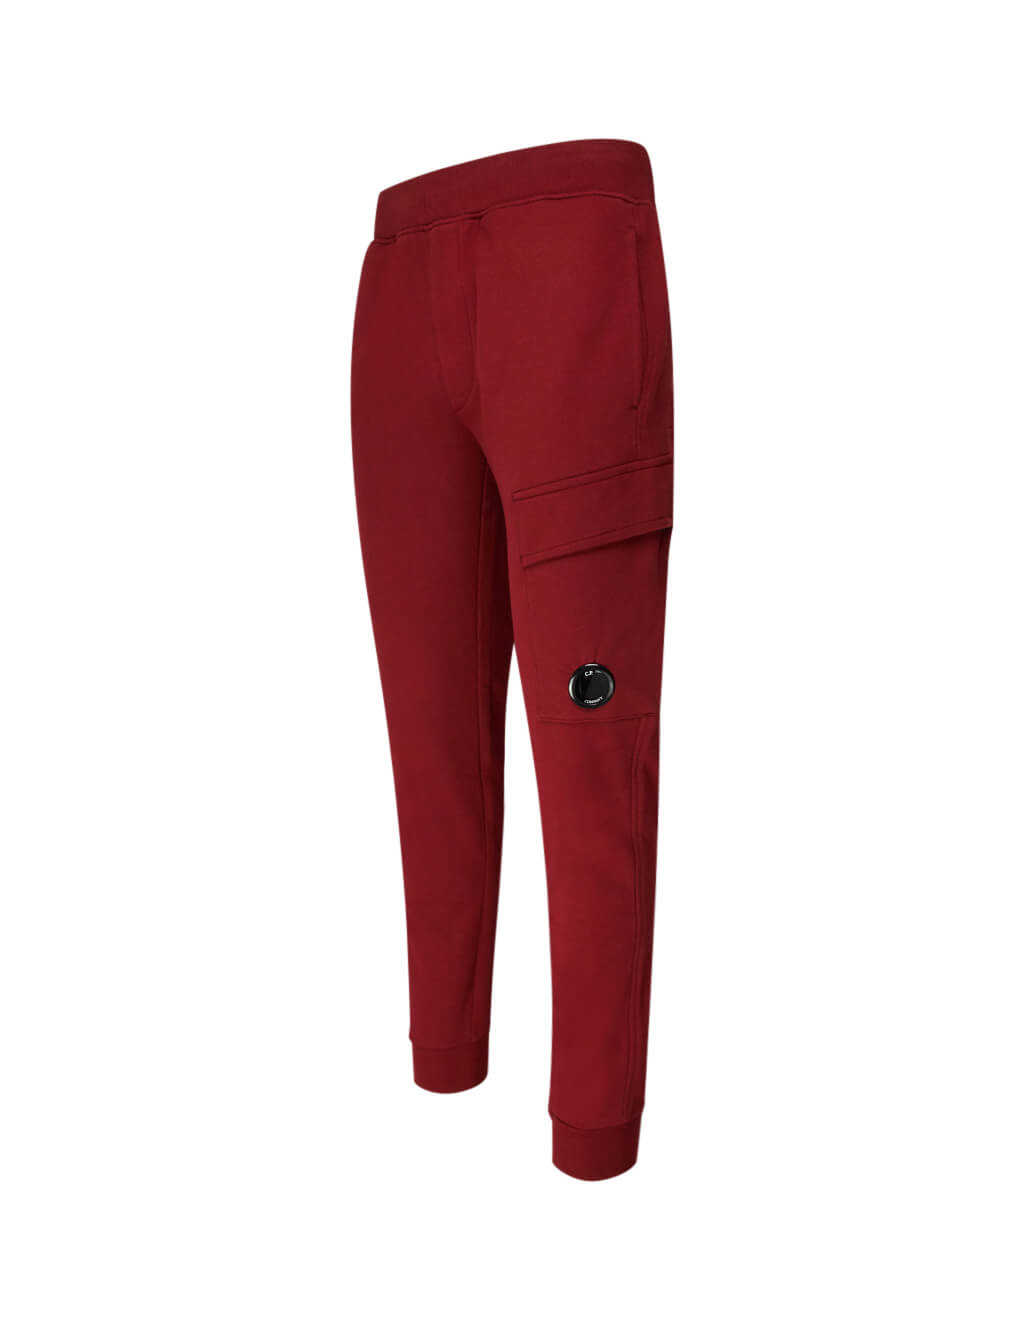 C.P. Company Men's Giulio Fashion Red Circular Badge Sweatpants 07CMSS004A005086W576